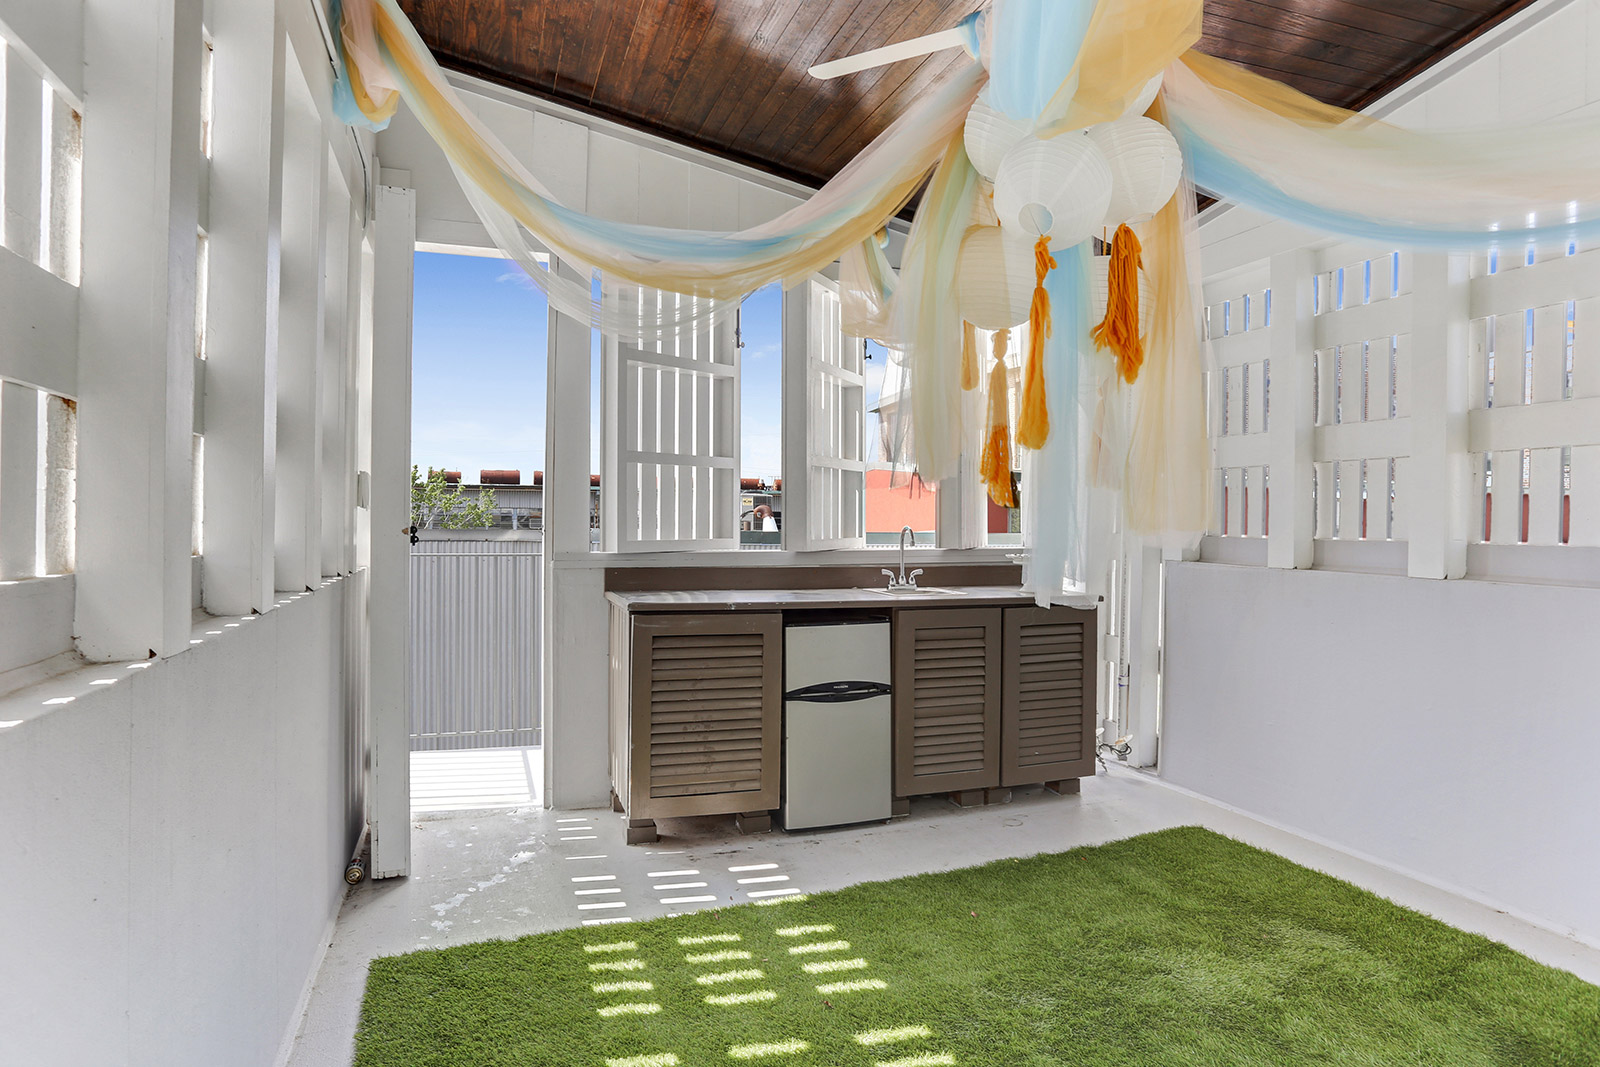 Bywater/Marigny, House, 2 beds, 2.5 baths, $7000 per month New Orleans Rental - devie image_24